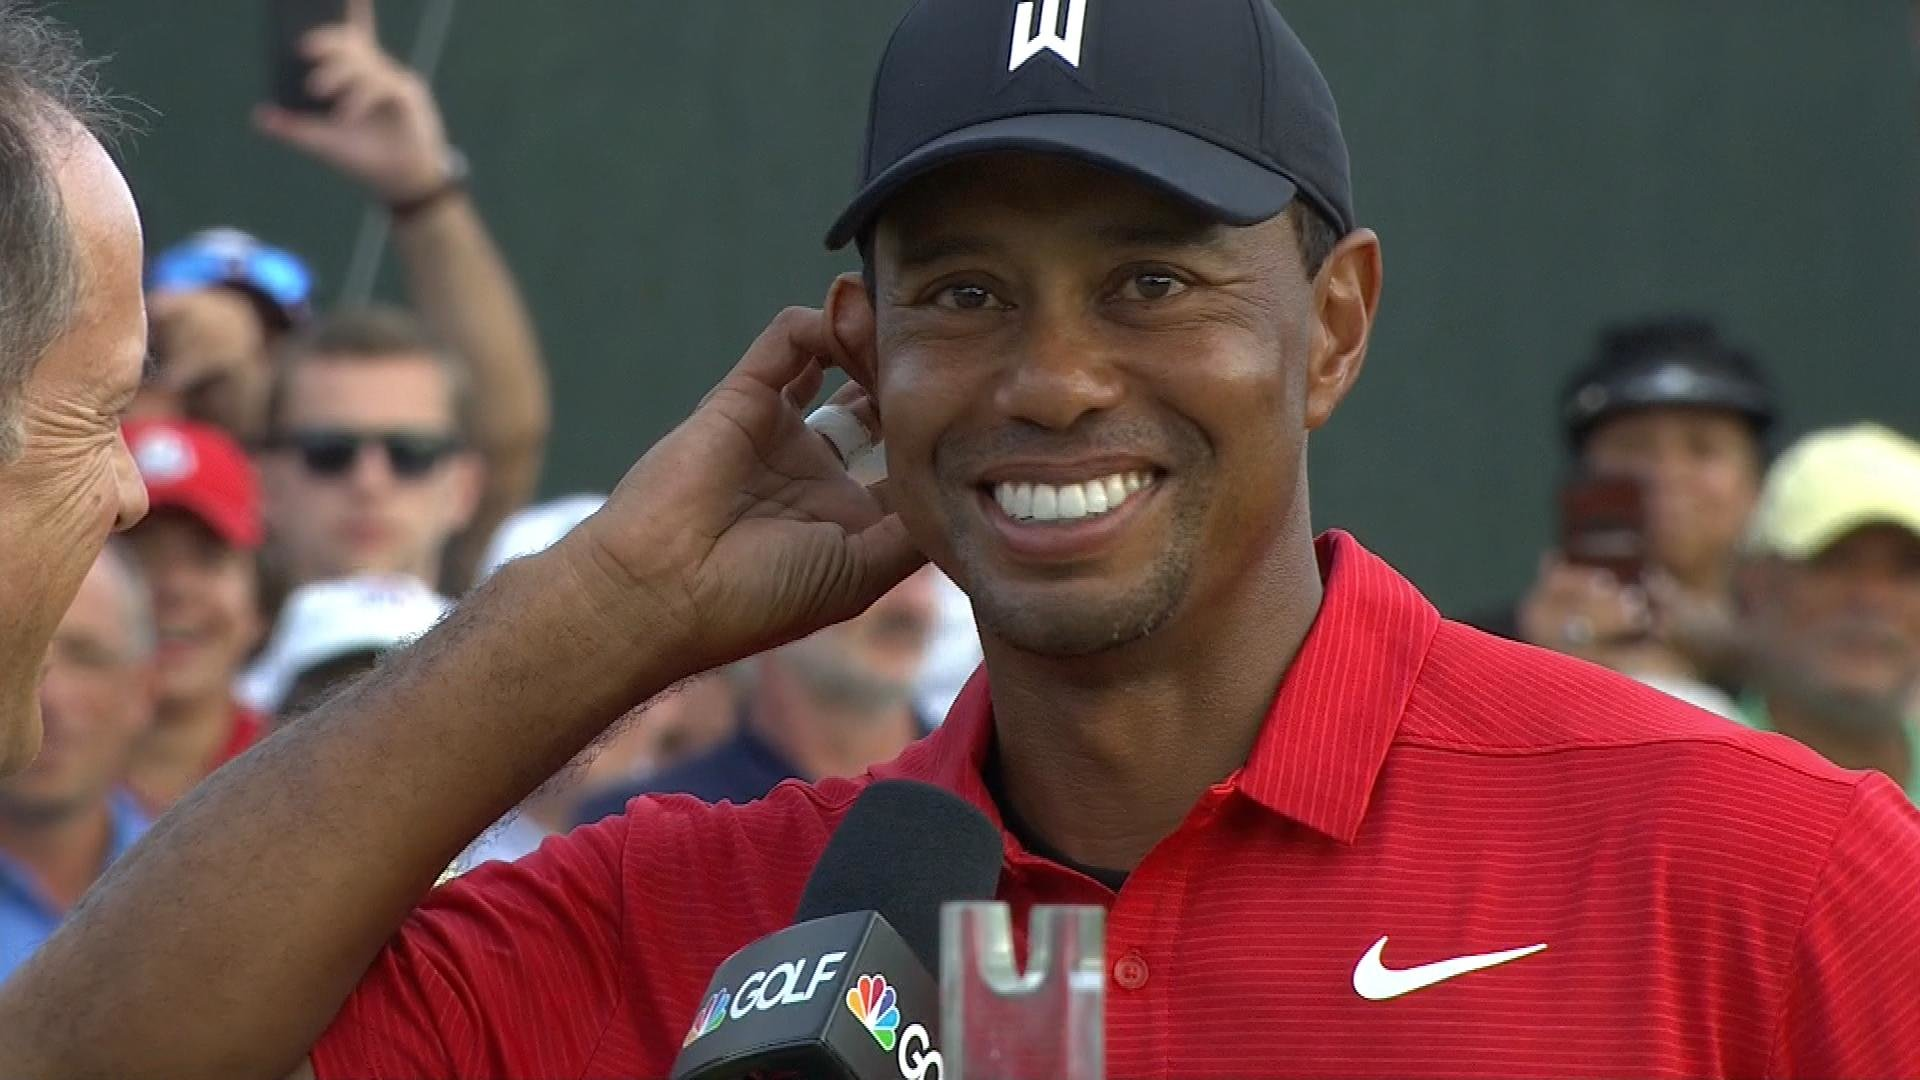 Tiger Woods: 'I just can't believe I've pulled this off' | NBC Sports